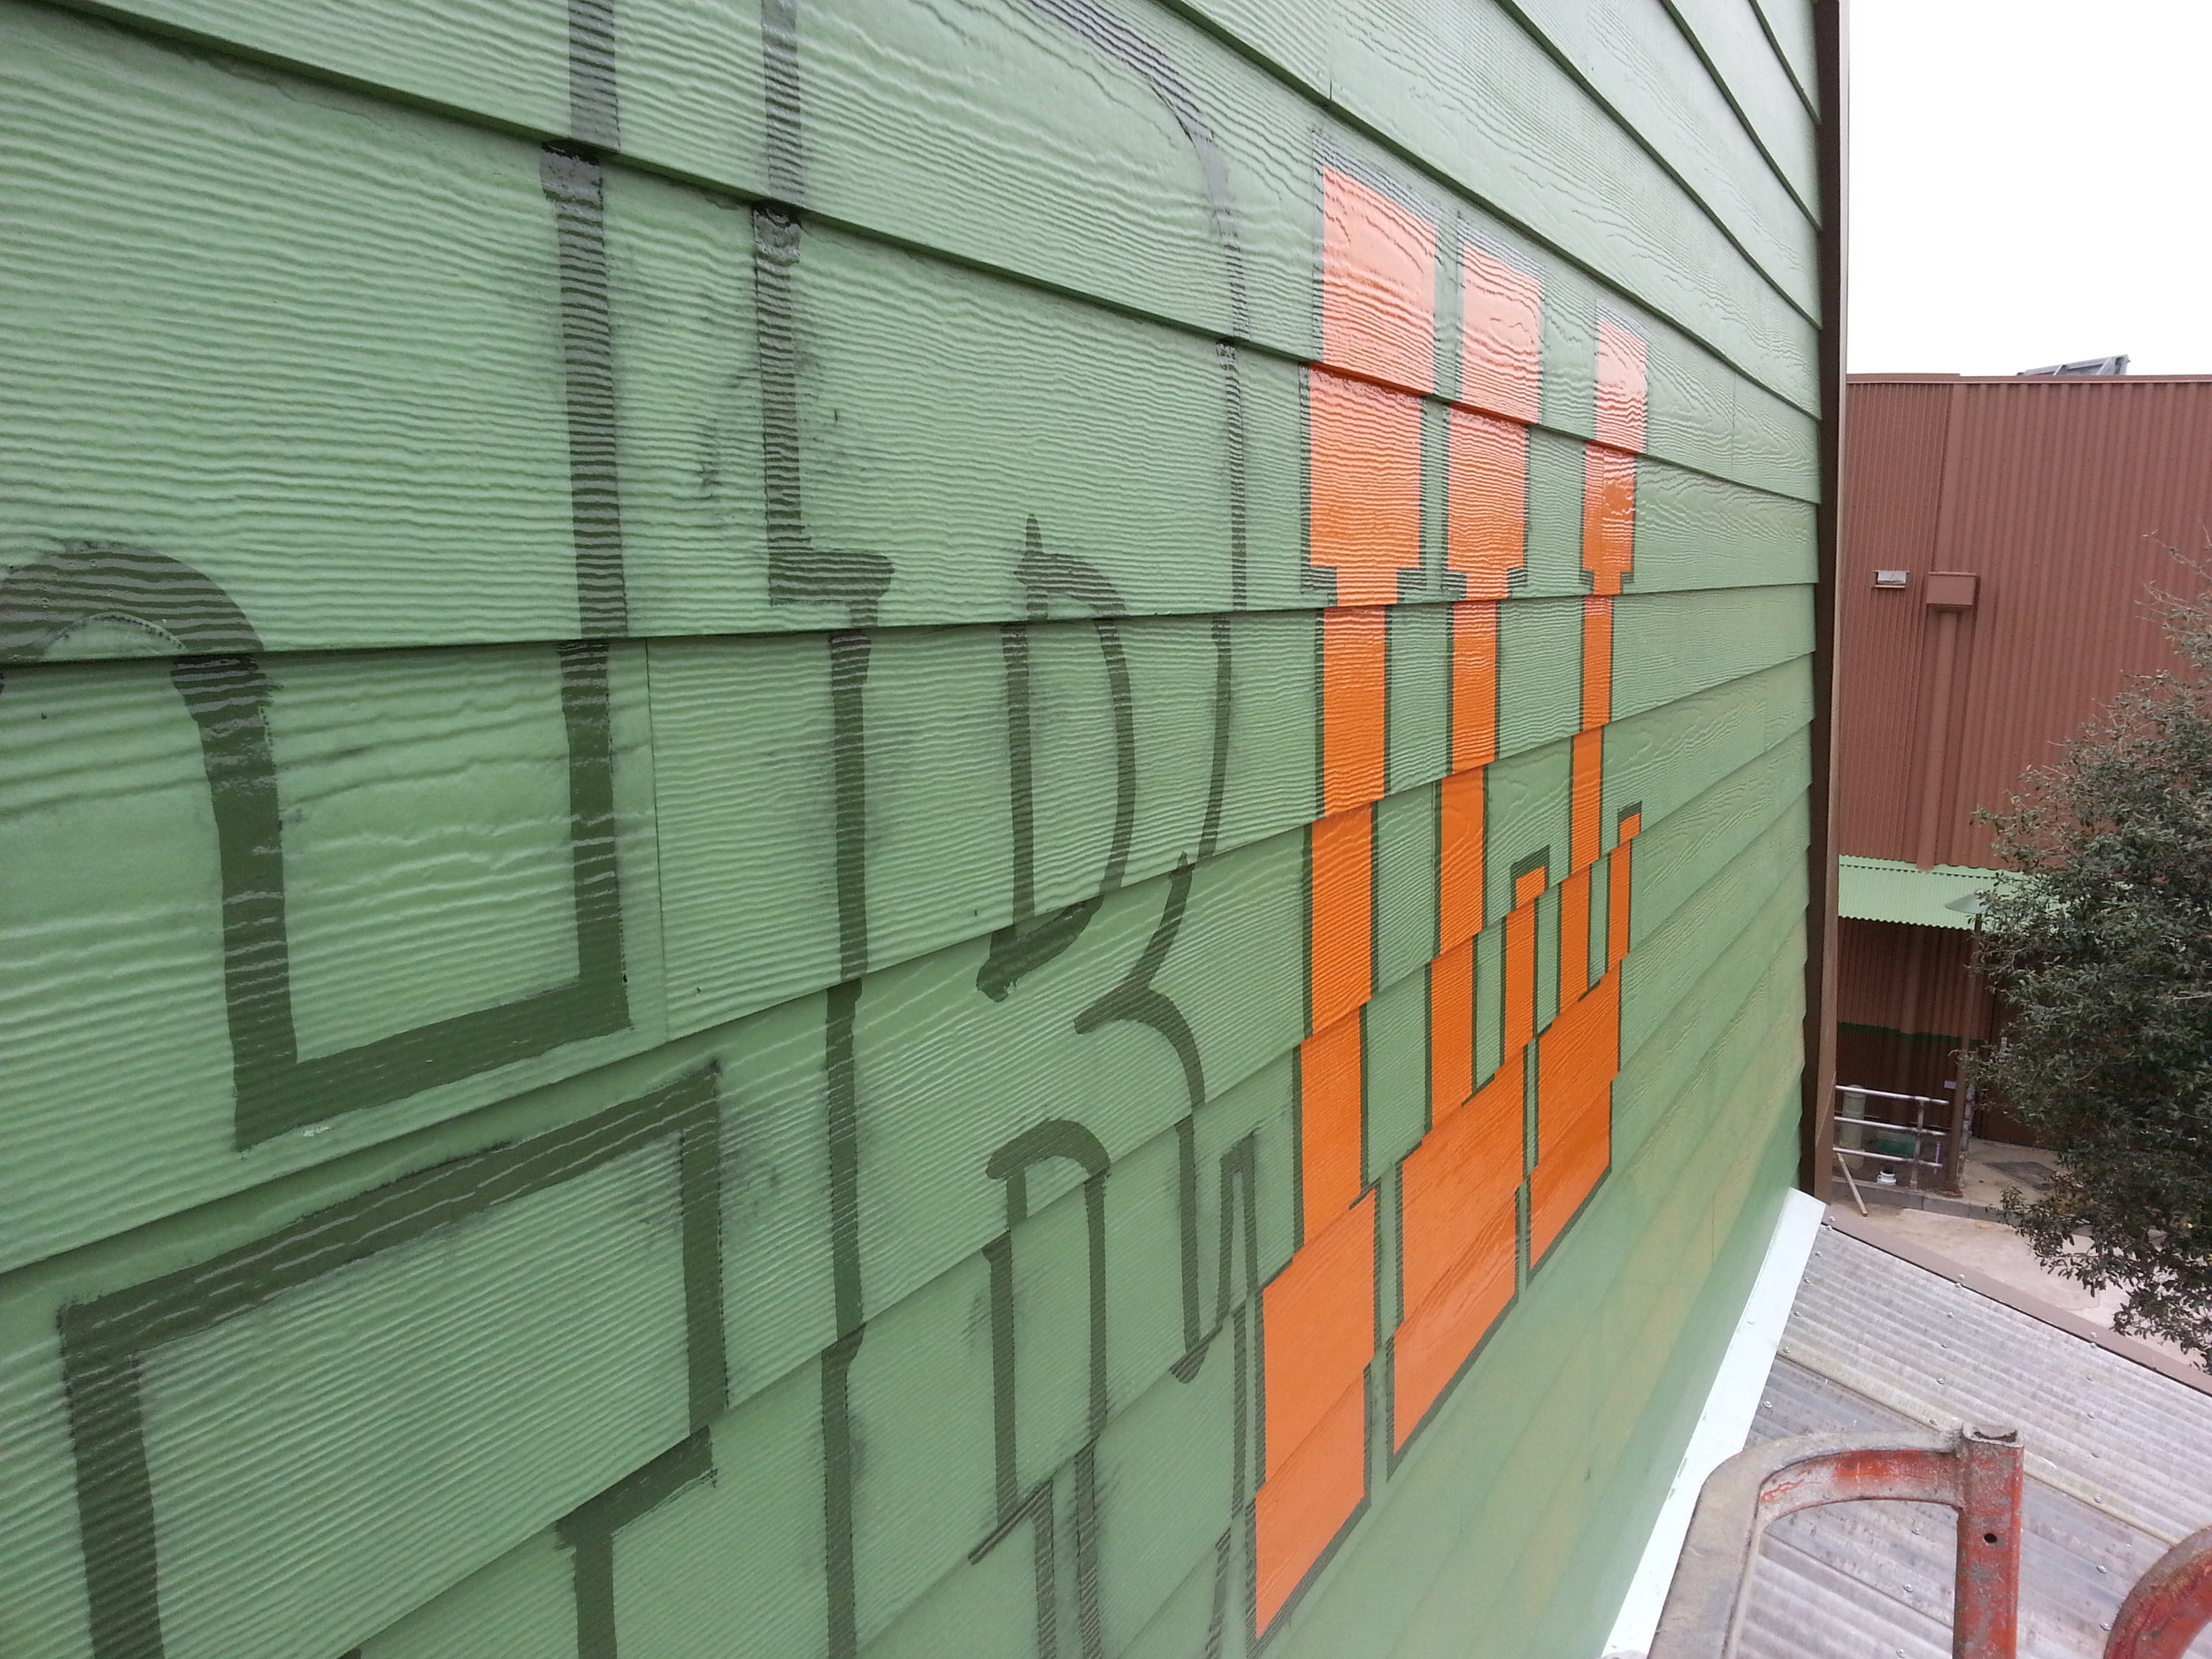 Smokejumpers Grill, California Adventure, Anaheim CA - exterior hand painted graphics - progress… the orange color being painted.